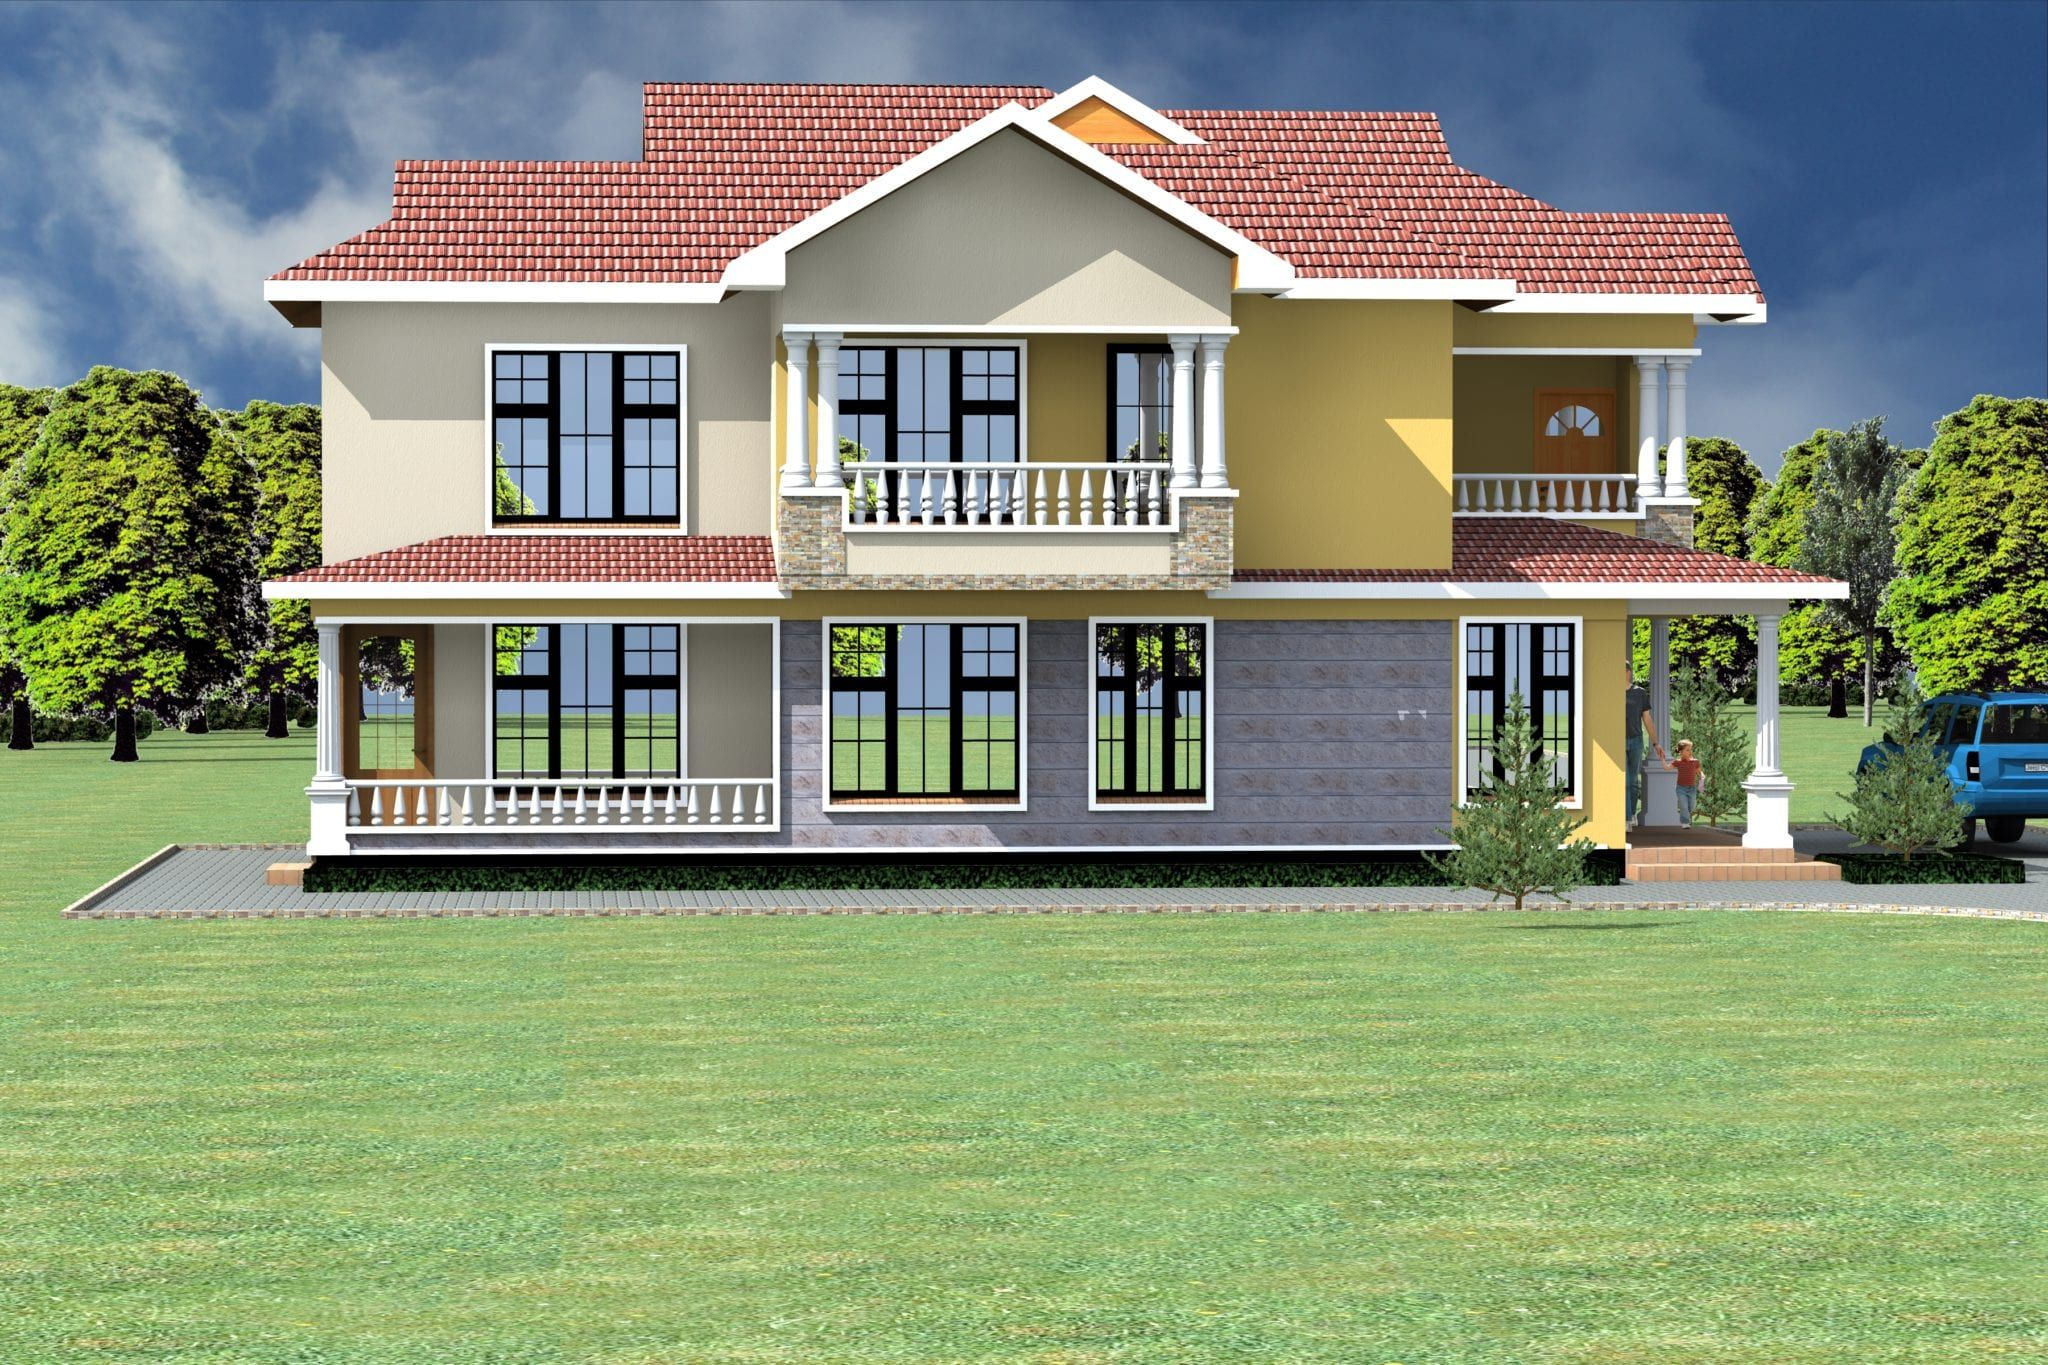 4 Bedroom Design 1088 A House Plans Architectural House Plans House Projects Architecture